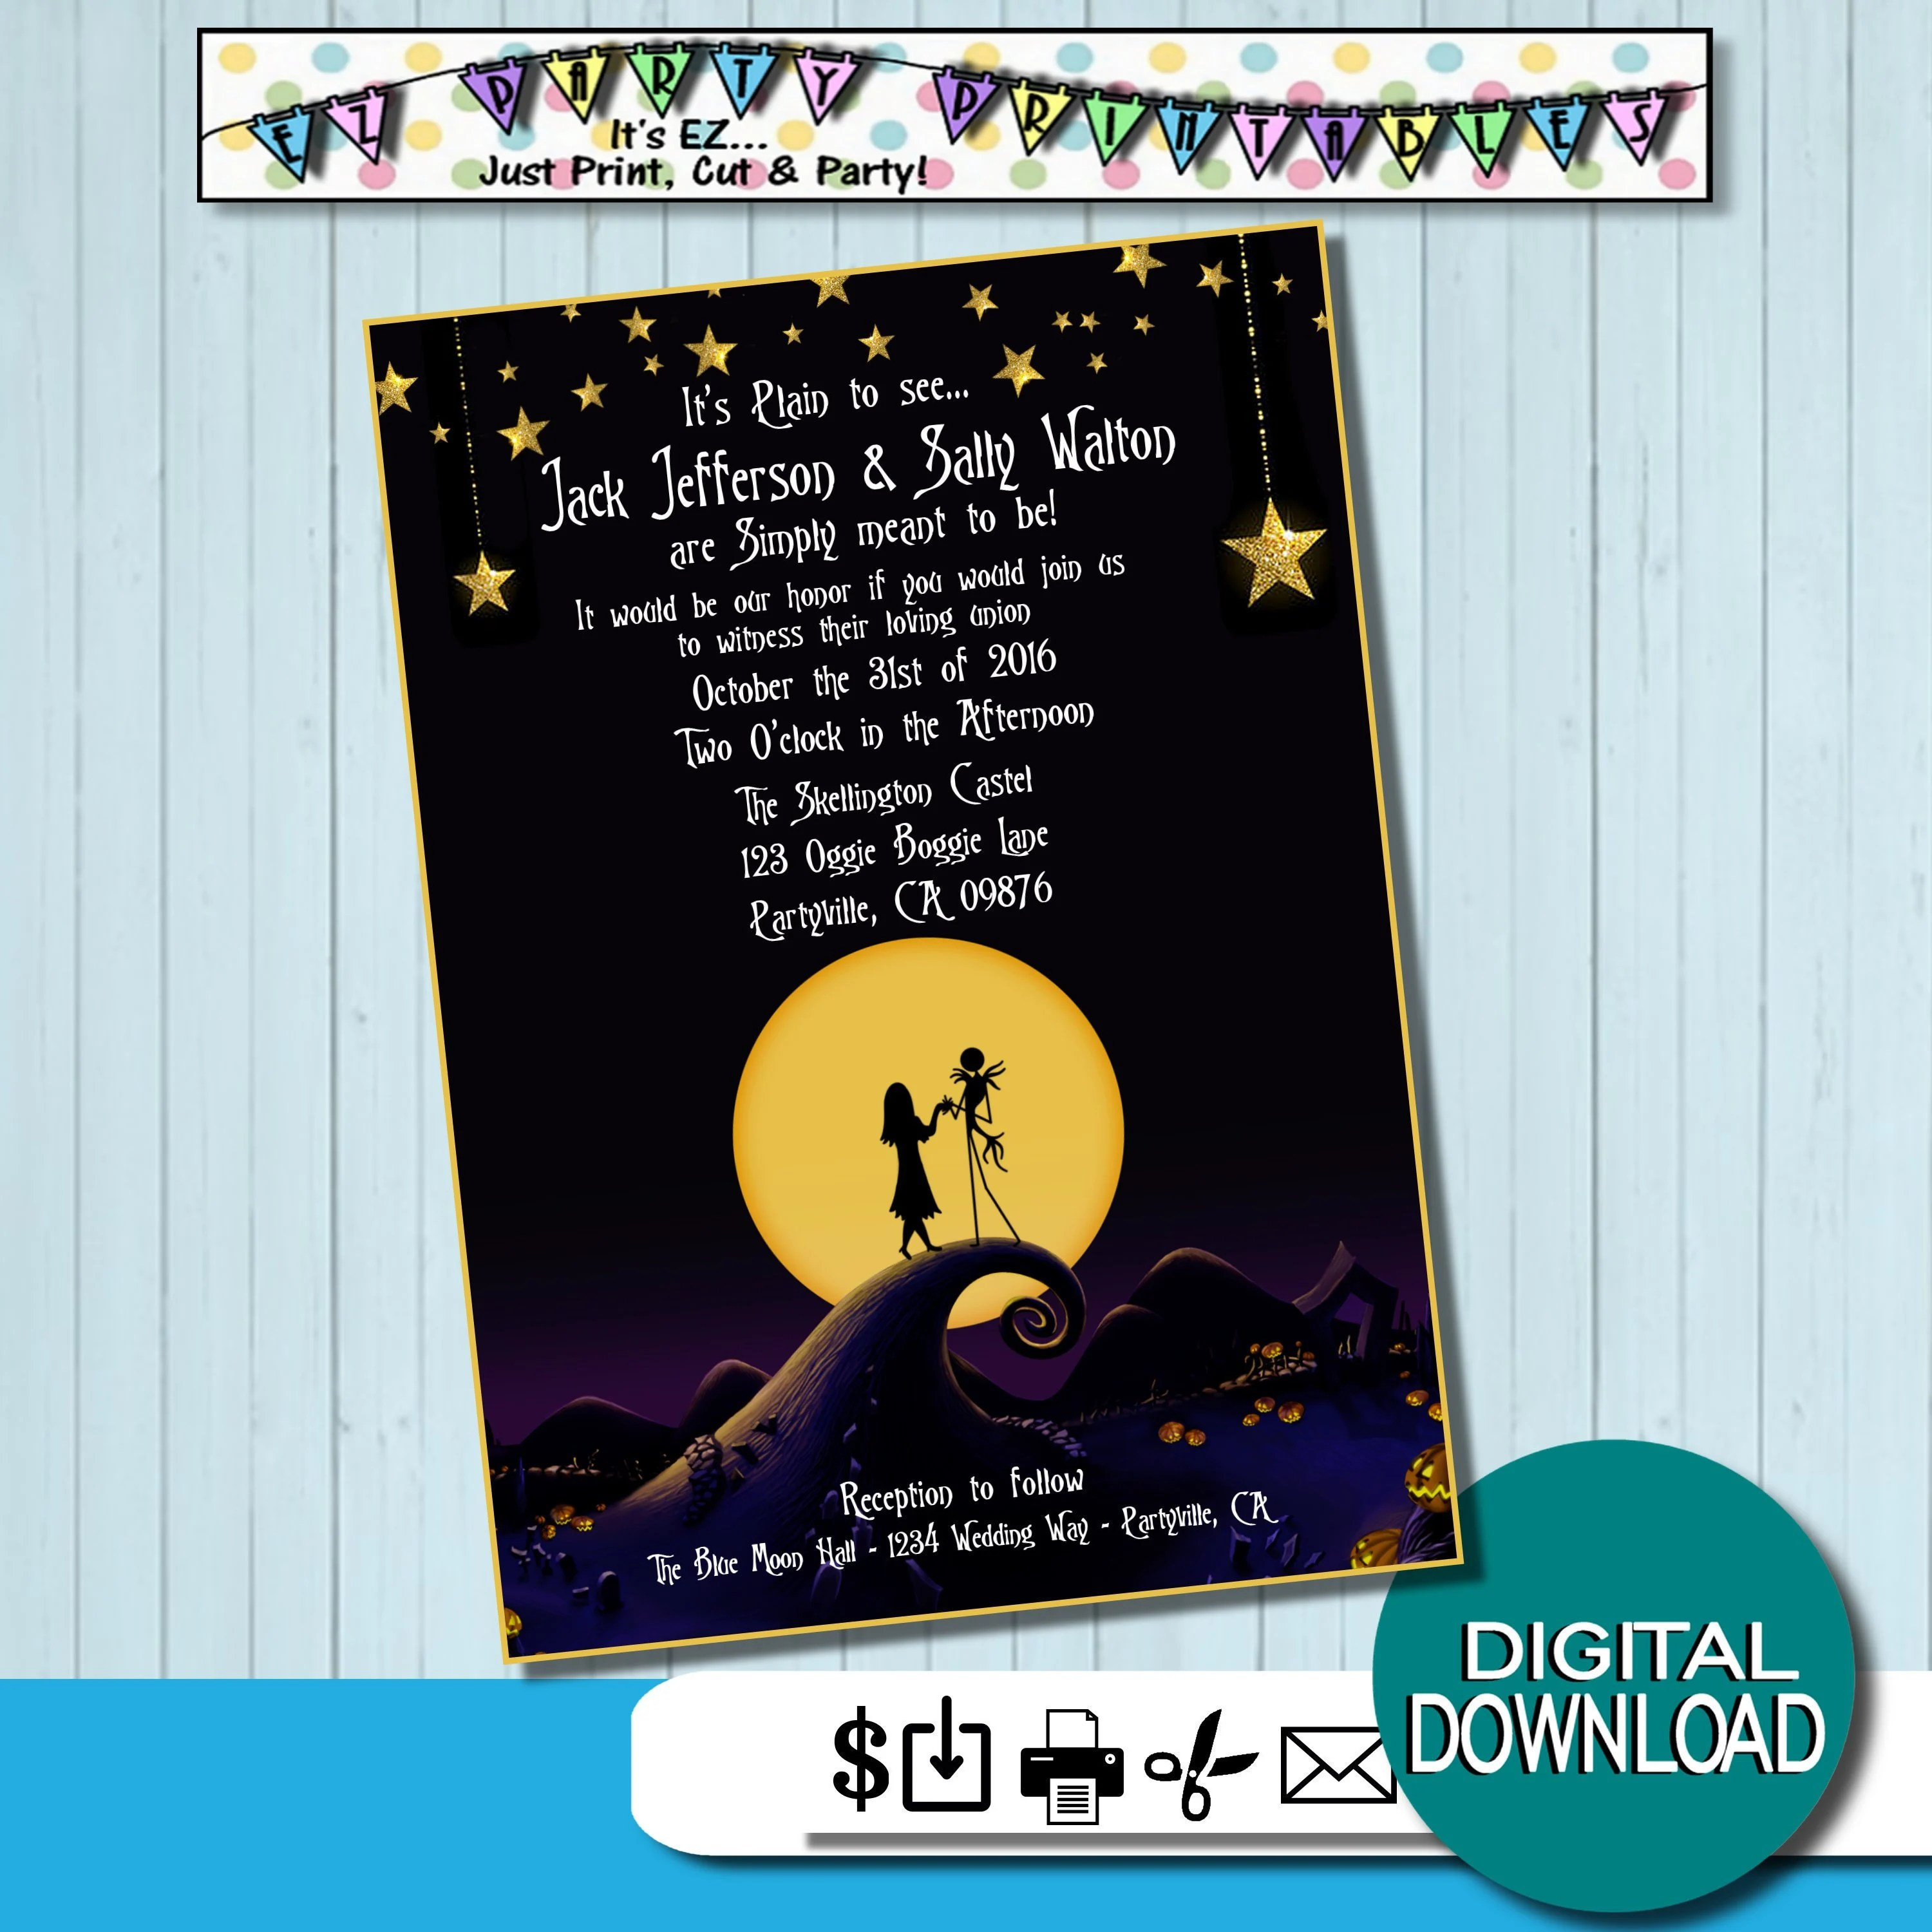 Nightmare before Christmas Wedding Invites Simply Meant to be Etsy